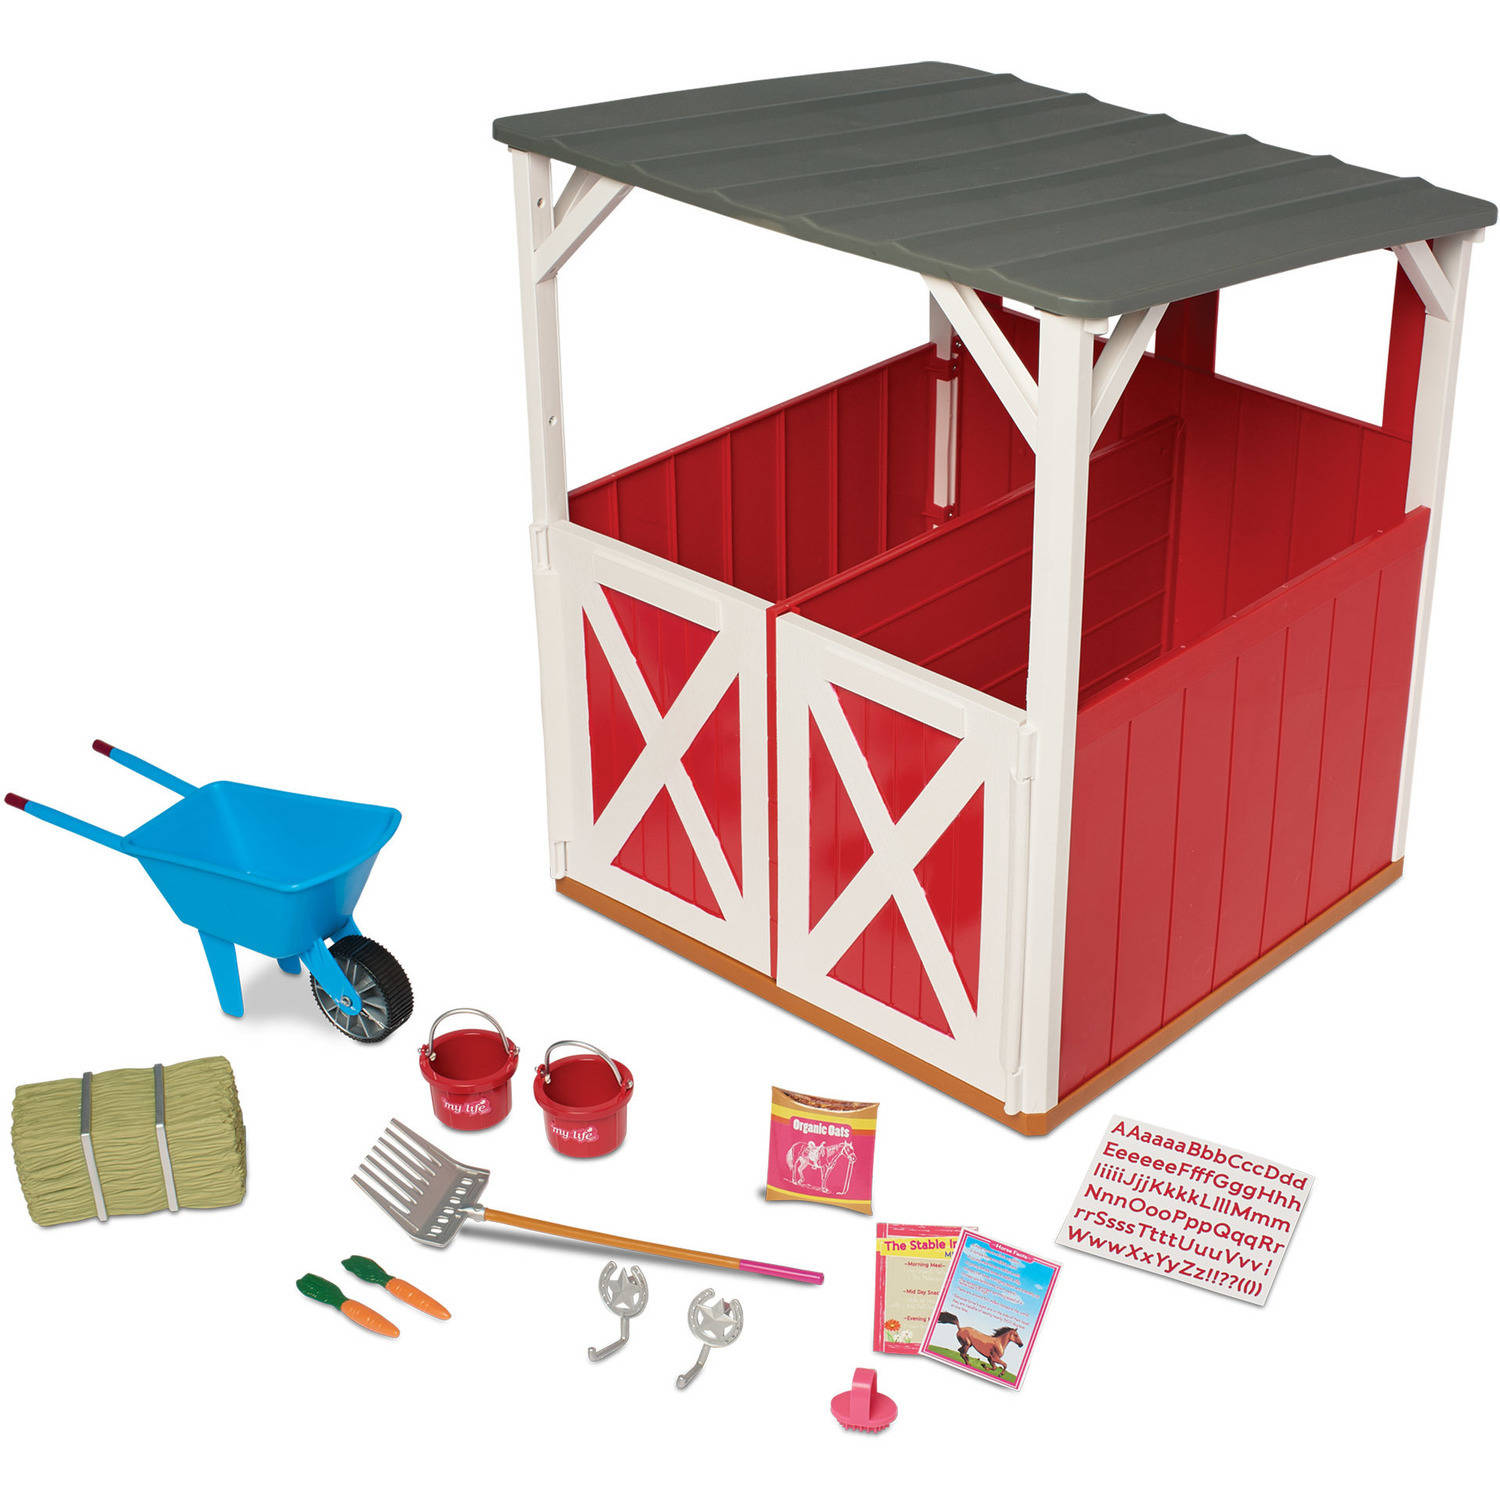 My Life As 2-Stall Stable Play Set, Multiple Accessories, Designed for Ages 3 and Up